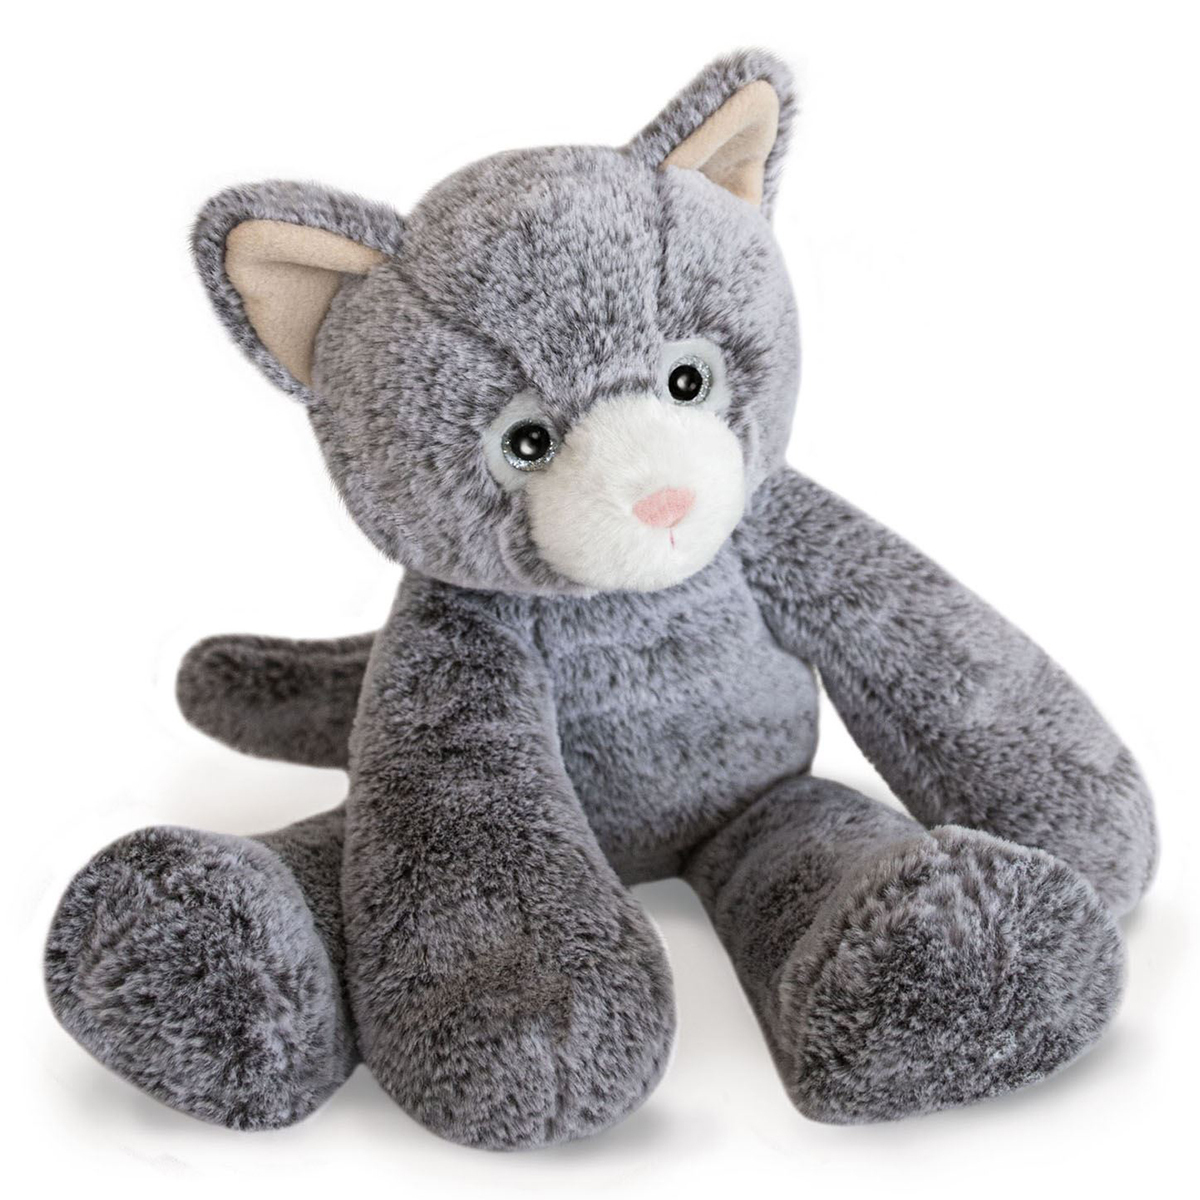 Peluche Peluche Sweety Mousse Chat - Grand Peluche Sweety Mousse Chat 40 cm